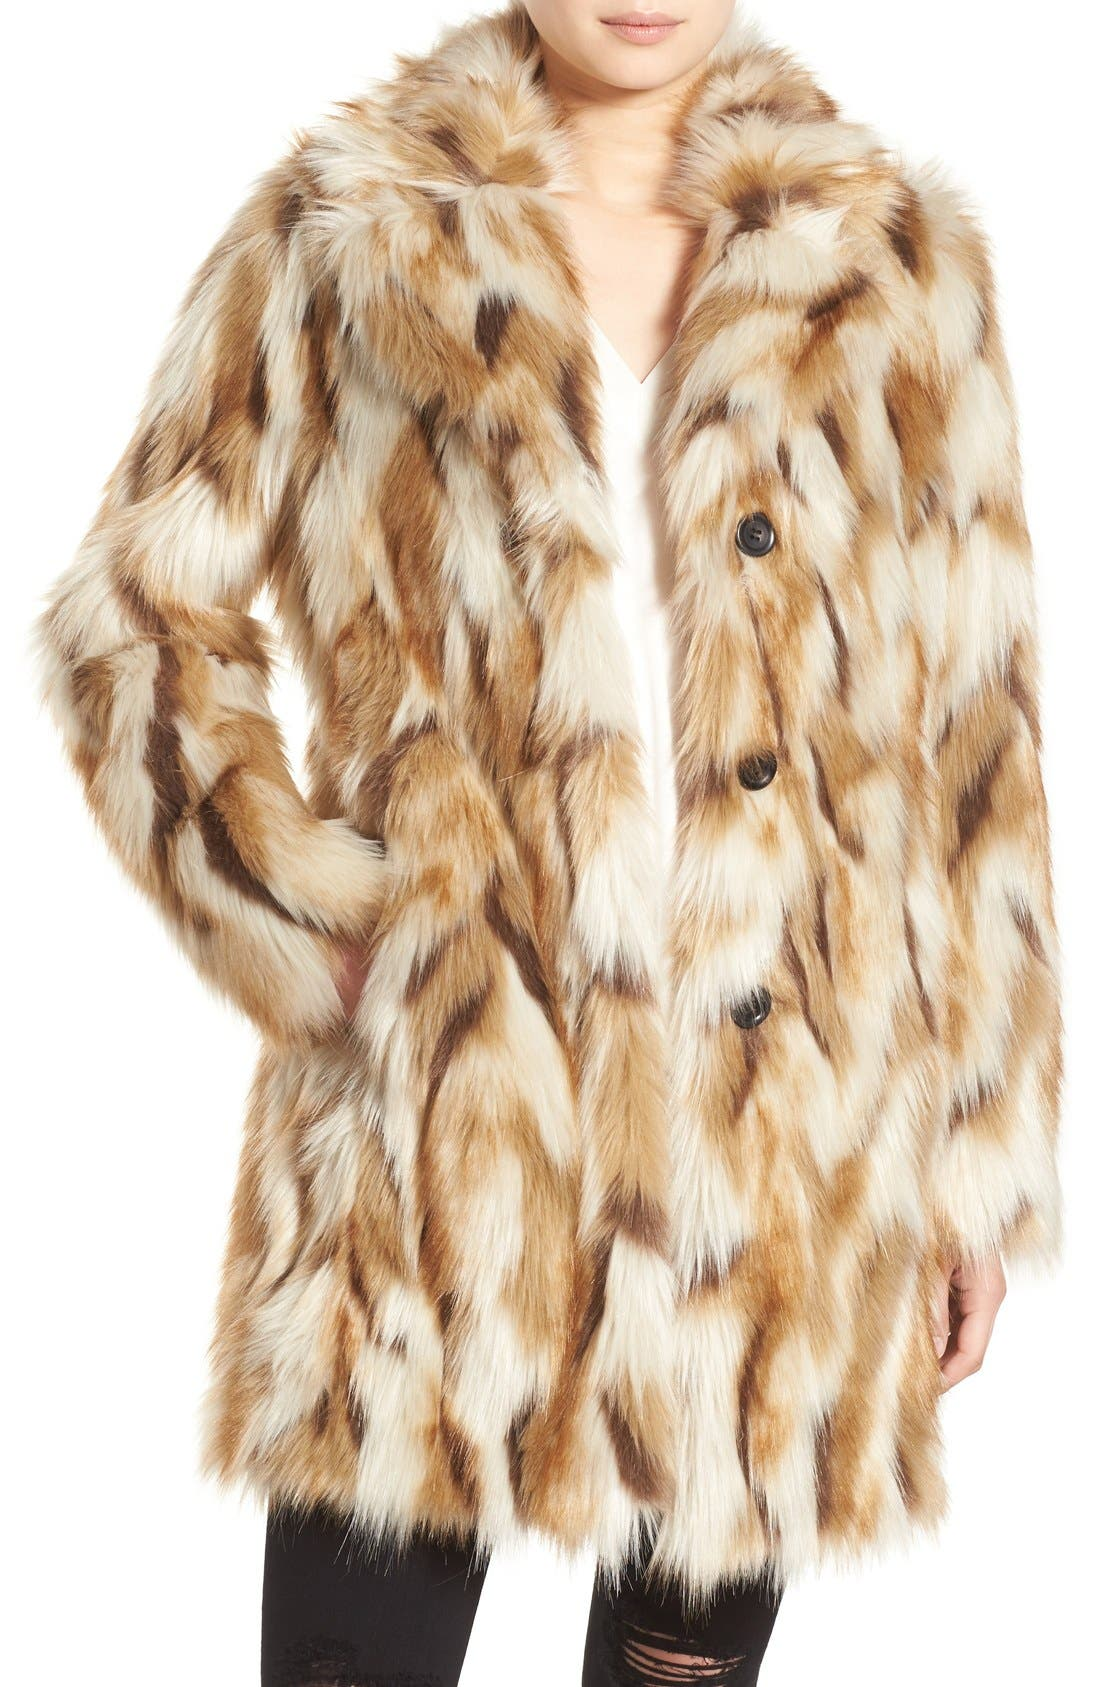 7 for All Mankind Faux Fur Coat,                         Main,                         color, 250